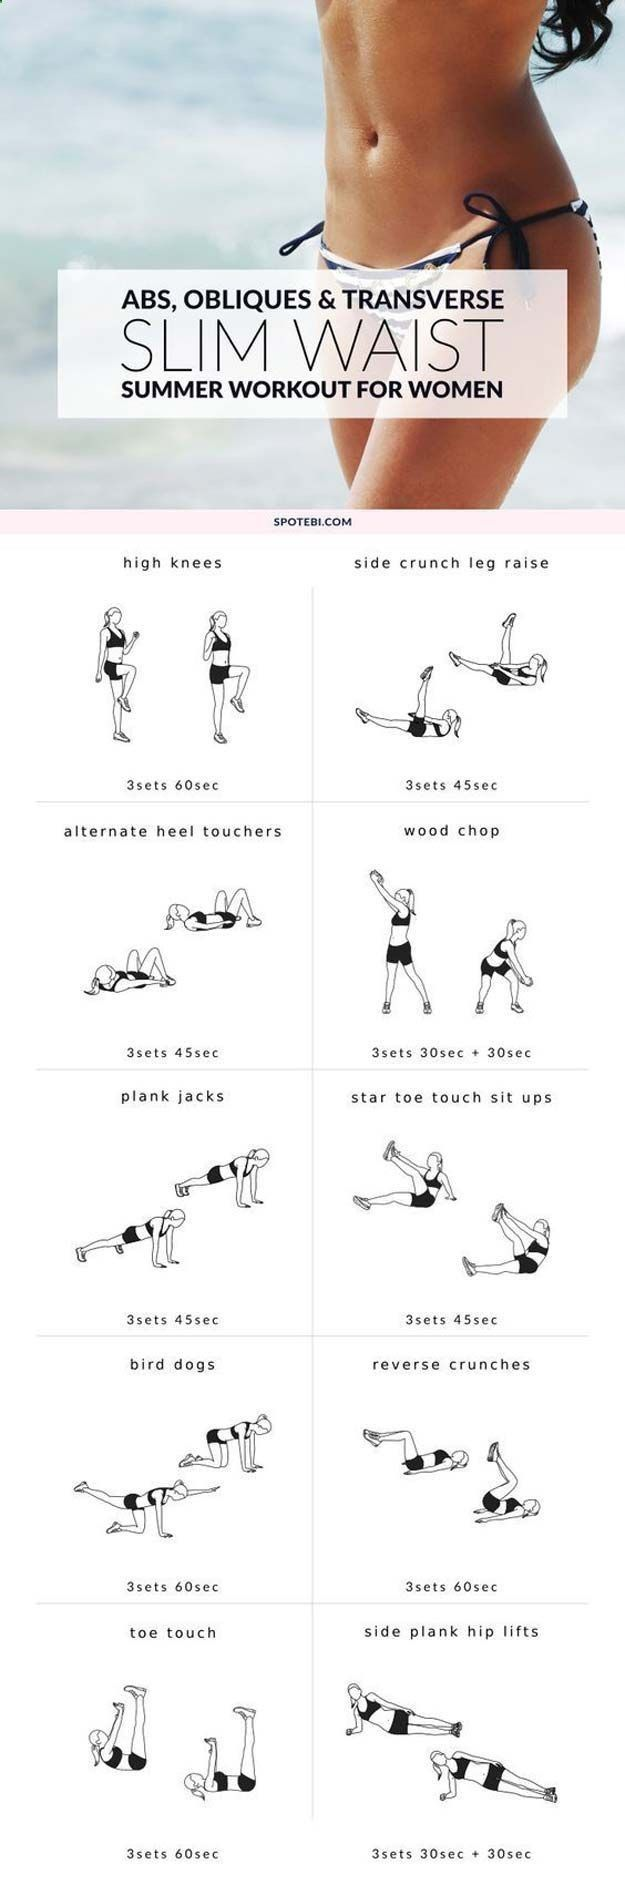 Yoga Workout - Best Exercises for Abs - At Home Waist Slimming Exercises For Women - Best Ab Exercises And Ab Workouts For A Flat Stomach, Increased Health Fitness, And Weightless. Ab Exercises For Women, For Men, And For Kids. Great With A Diet To Help With Losing Weight From The Lower Belly, Getting Rid Of That Muffin Top, And Increasing Muscle To Refine Your Stomach And Hip Shape. Fat Burners And Calorie Burners For A Flat Belly, Six Pack Abs, And Summer Beach Body. Crunches And Mor...